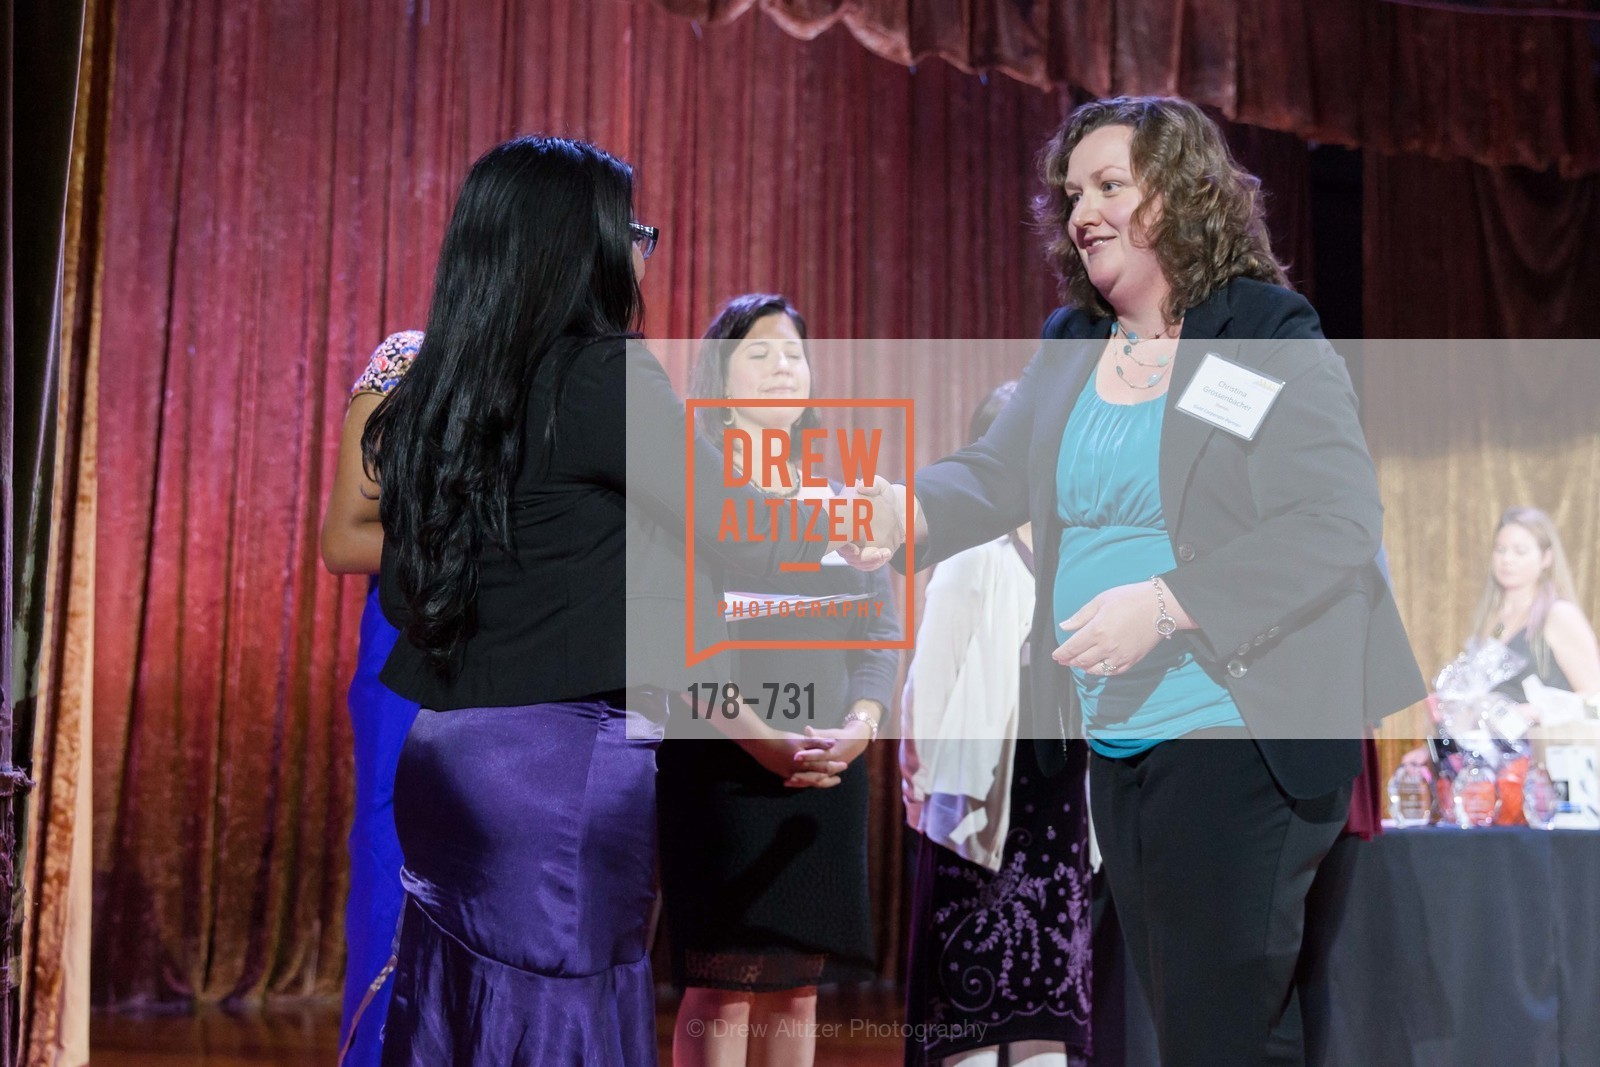 Christina Grossenbacher, WOMEN'S TRANSPORTATION SEMINAR SF Bay Area Chapter Annual Scholarship Awards, US, May 15th, 2015,Drew Altizer, Drew Altizer Photography, full-service agency, private events, San Francisco photographer, photographer california